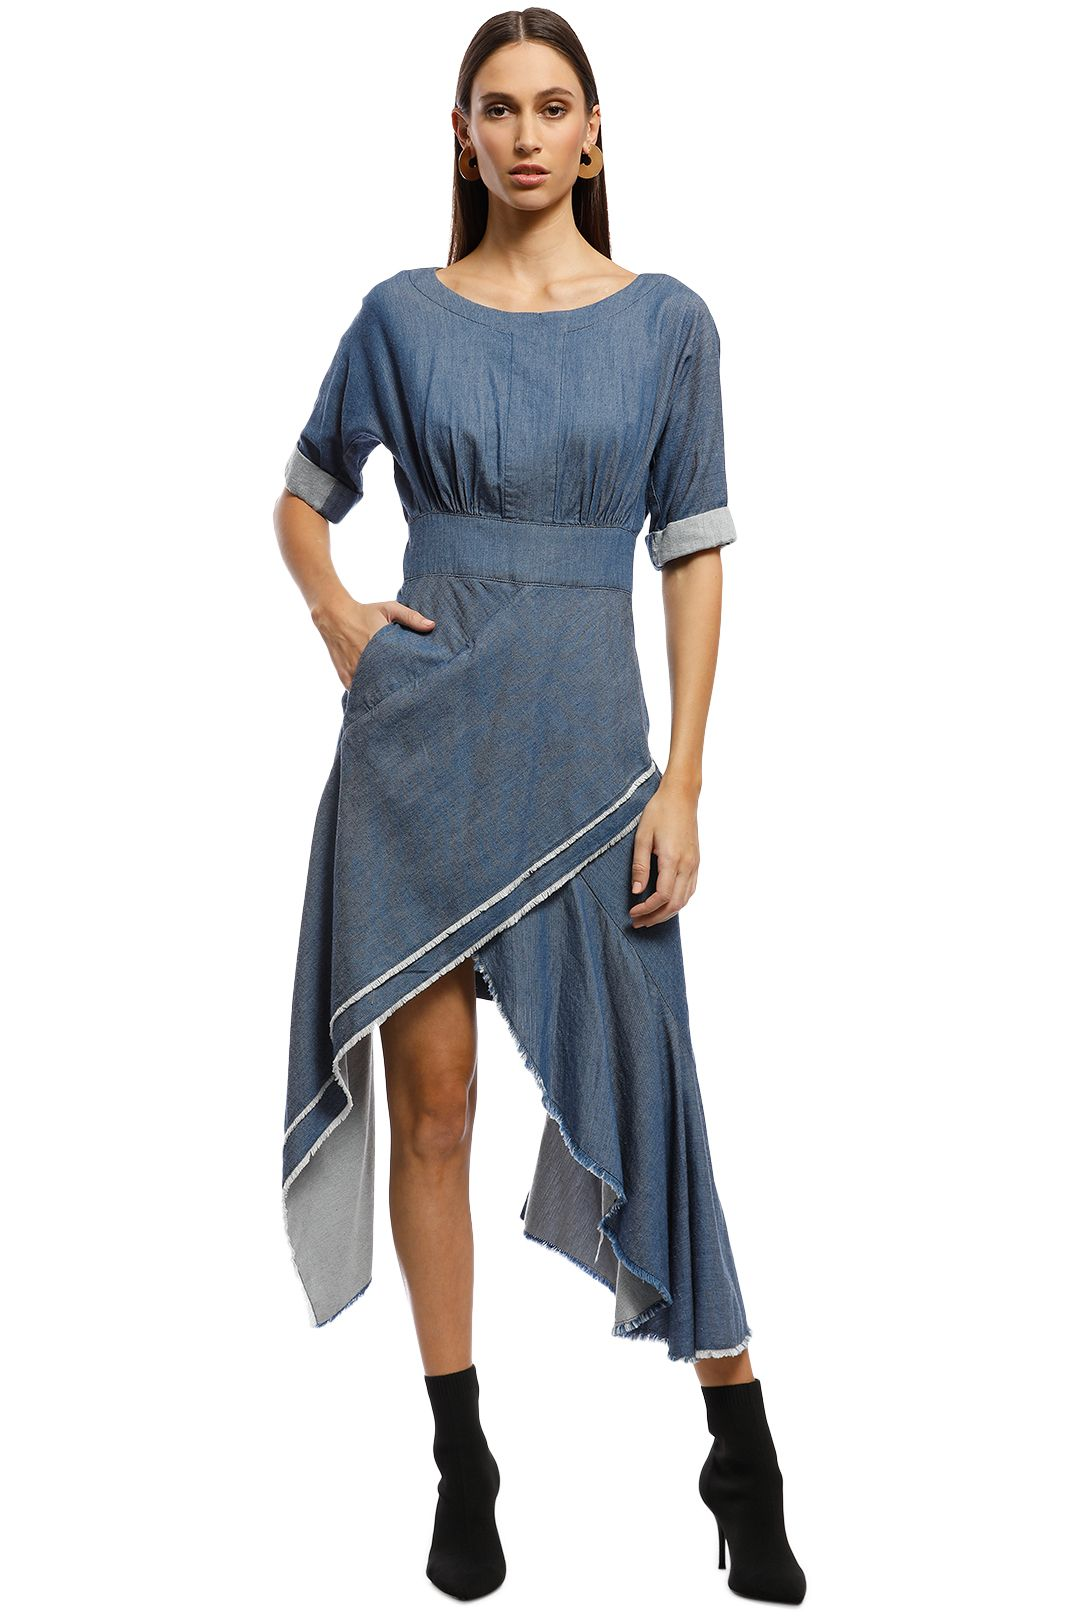 KITX - Compassionate Dress - Blue - Front